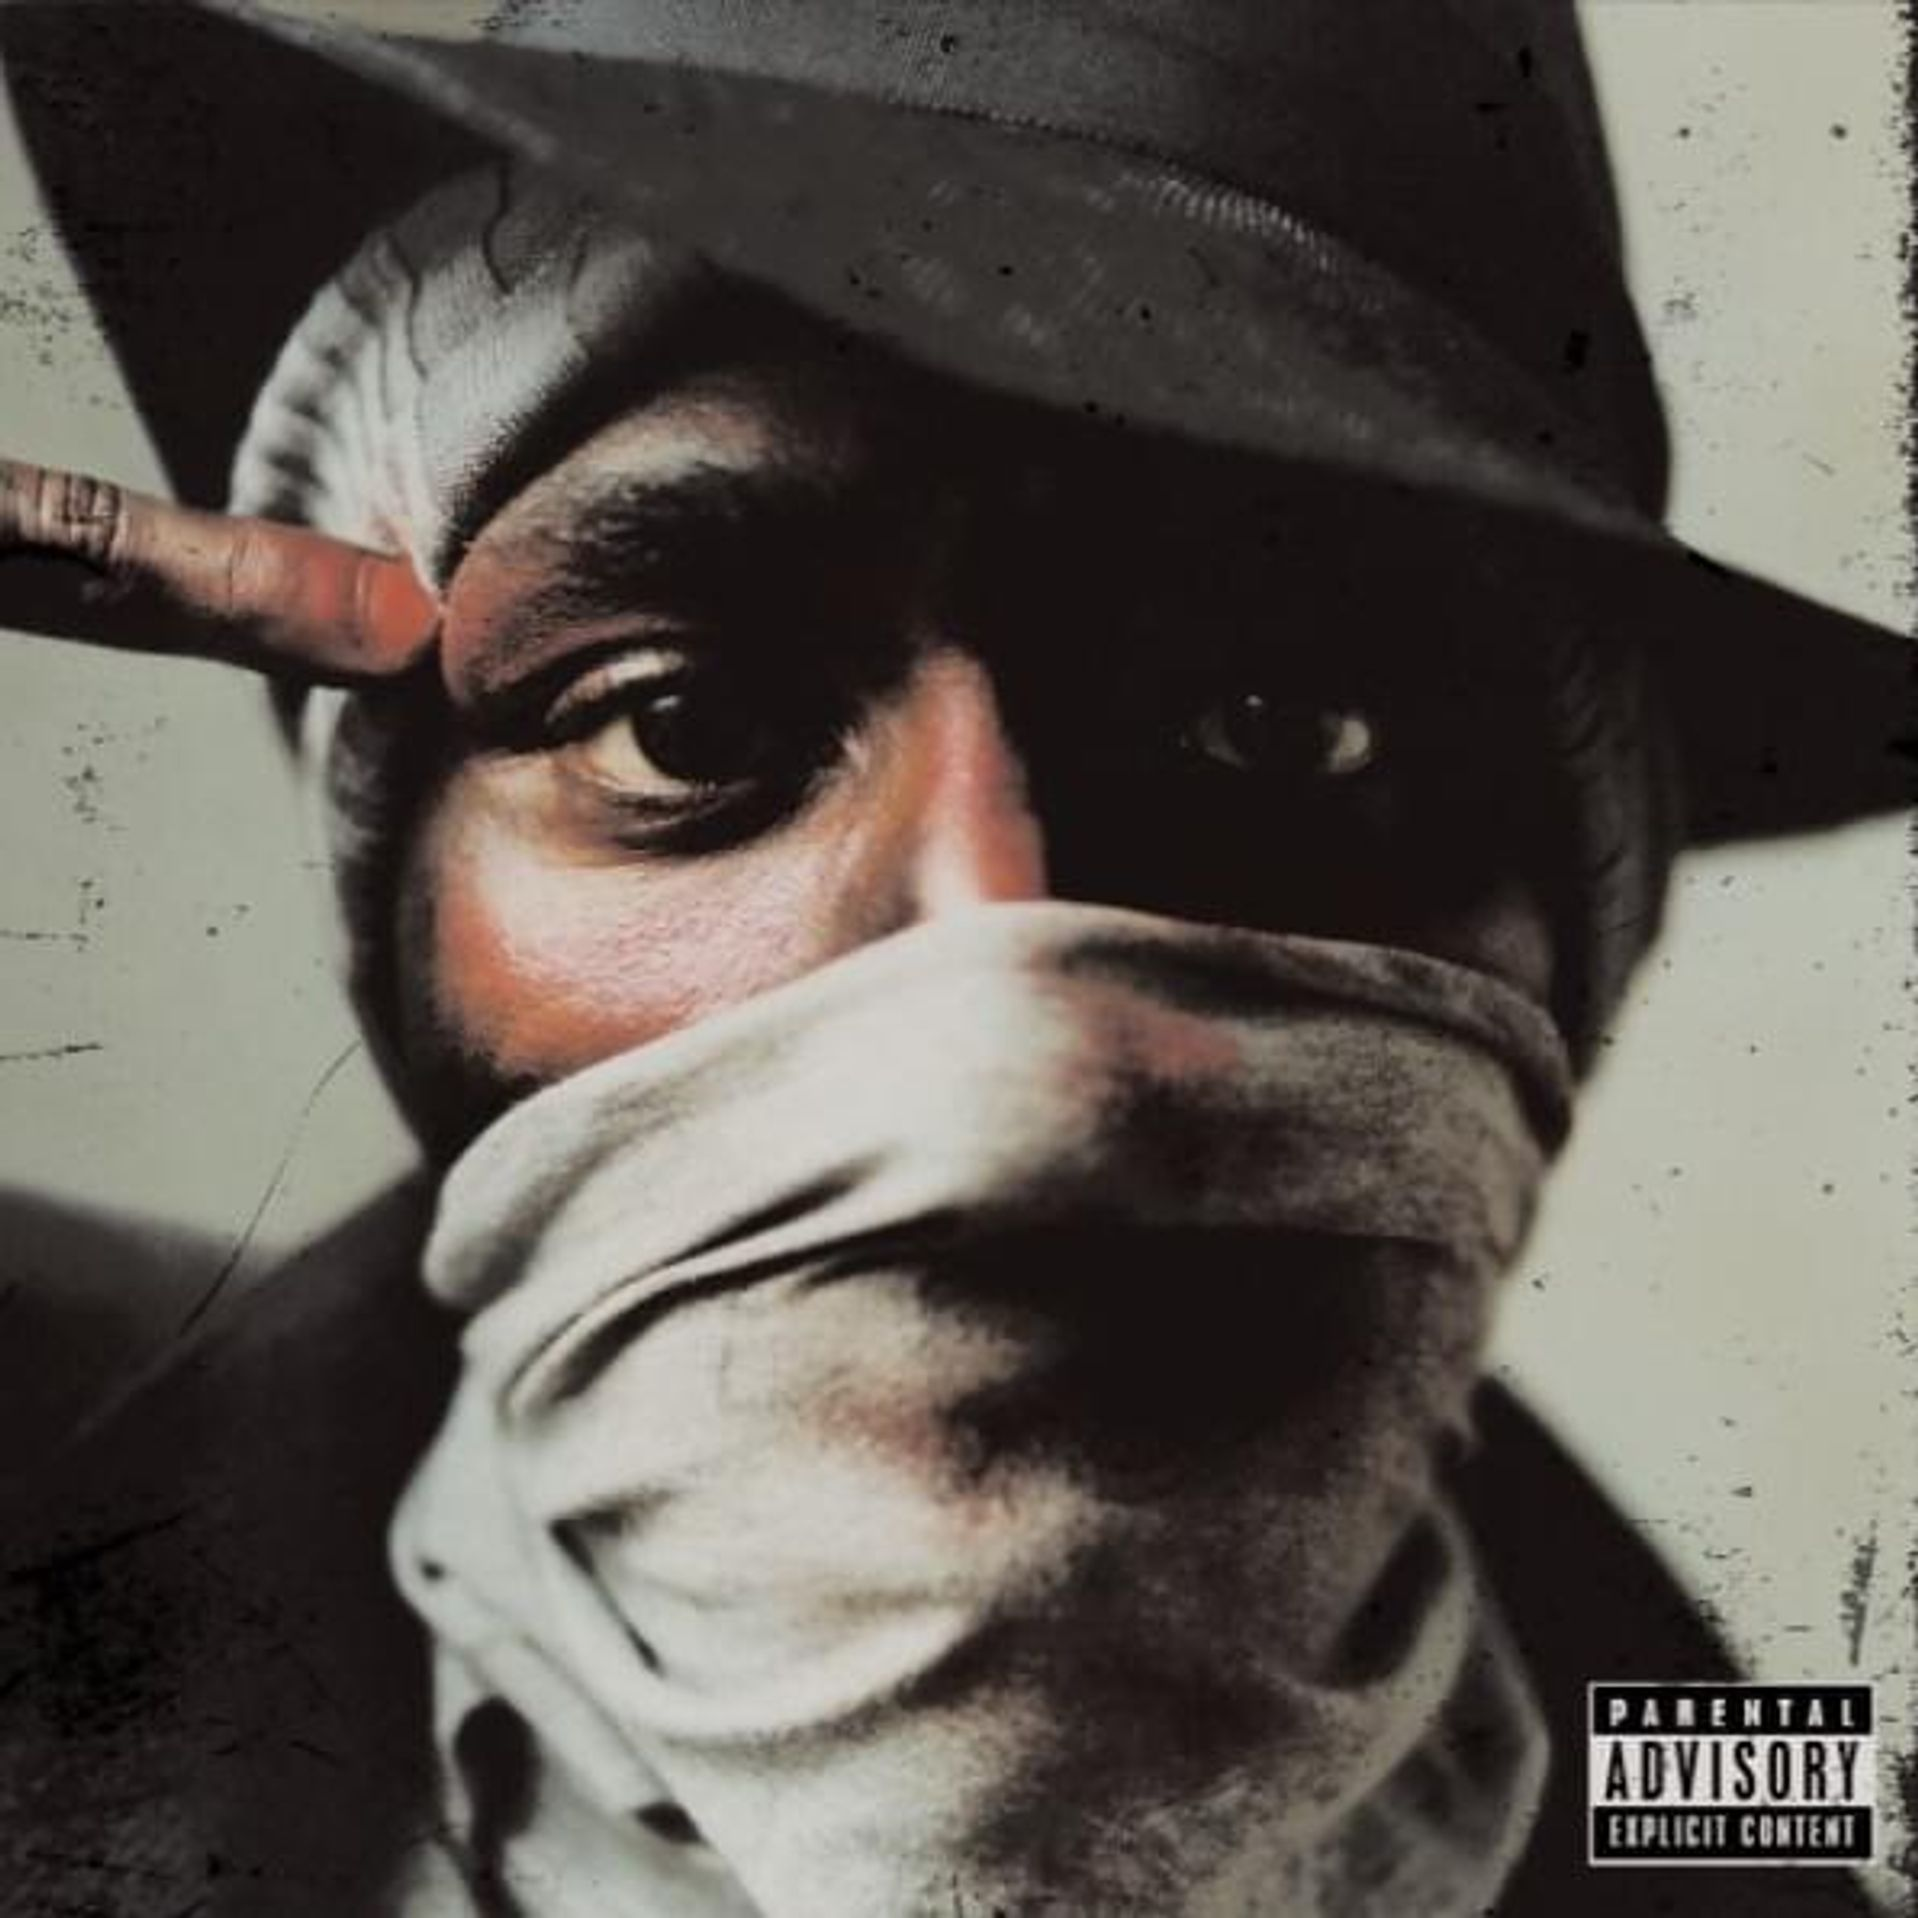 Album Title: The New Danger by: Mos Def